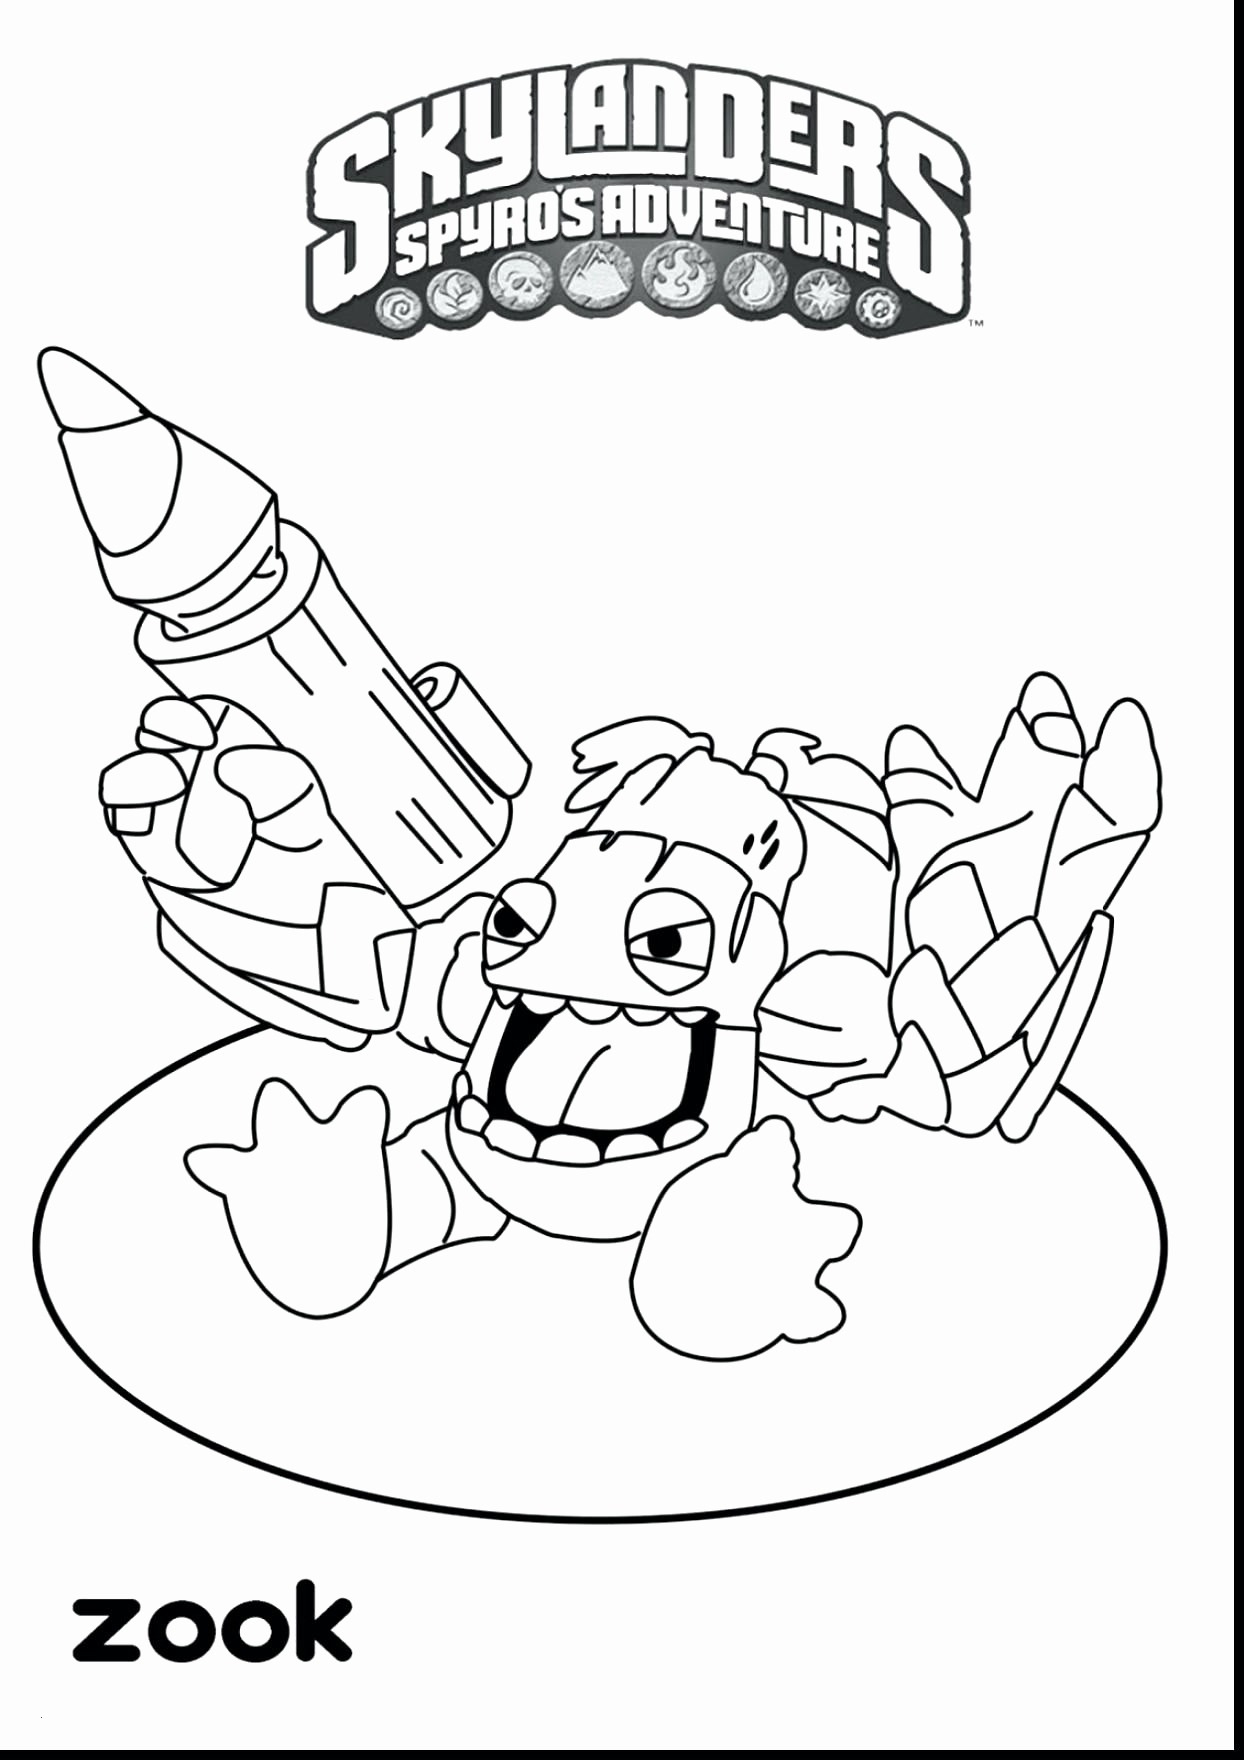 personalized printable coloring pages Collection-Tooth Coloring Page 8-d